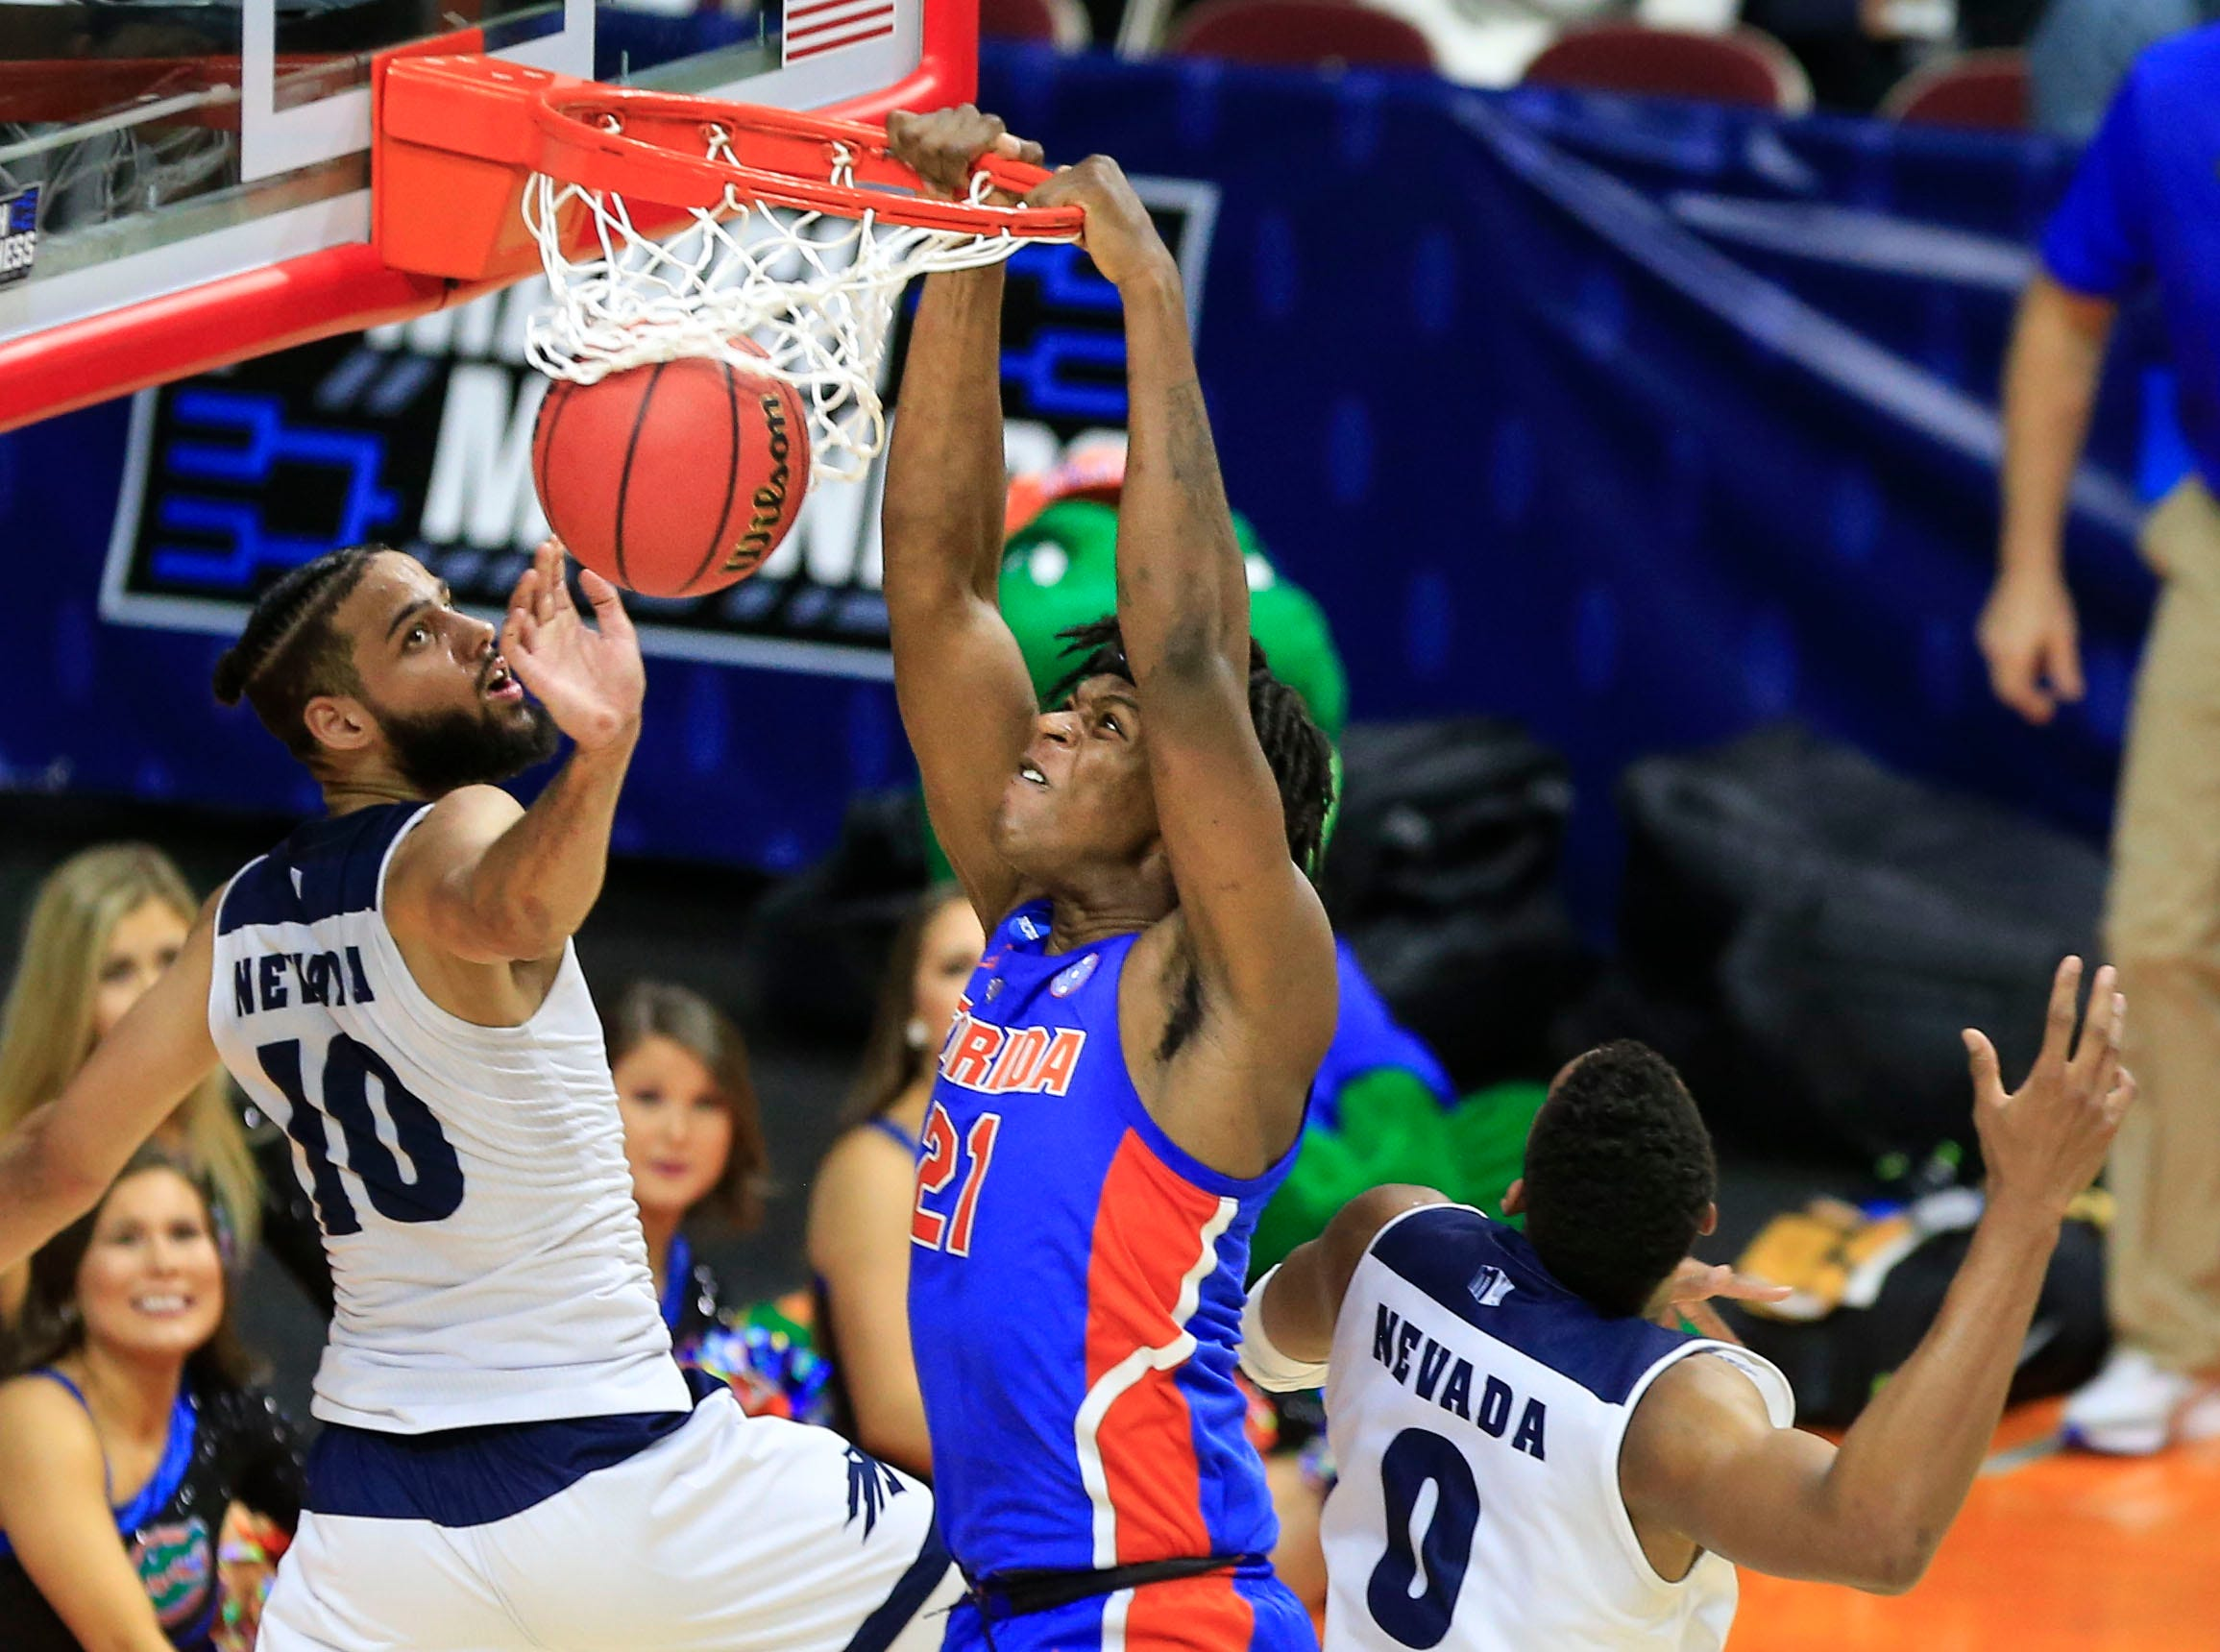 Florida forward Dontay Bassett dunks the ball as Nevada forward Caleb Martin and Nevada forward Tre'Shawn Thurman defend during their NCAA Division I Men's Basketball Championship First Round game on Thursday, March 21, 2019 in Des Moines.